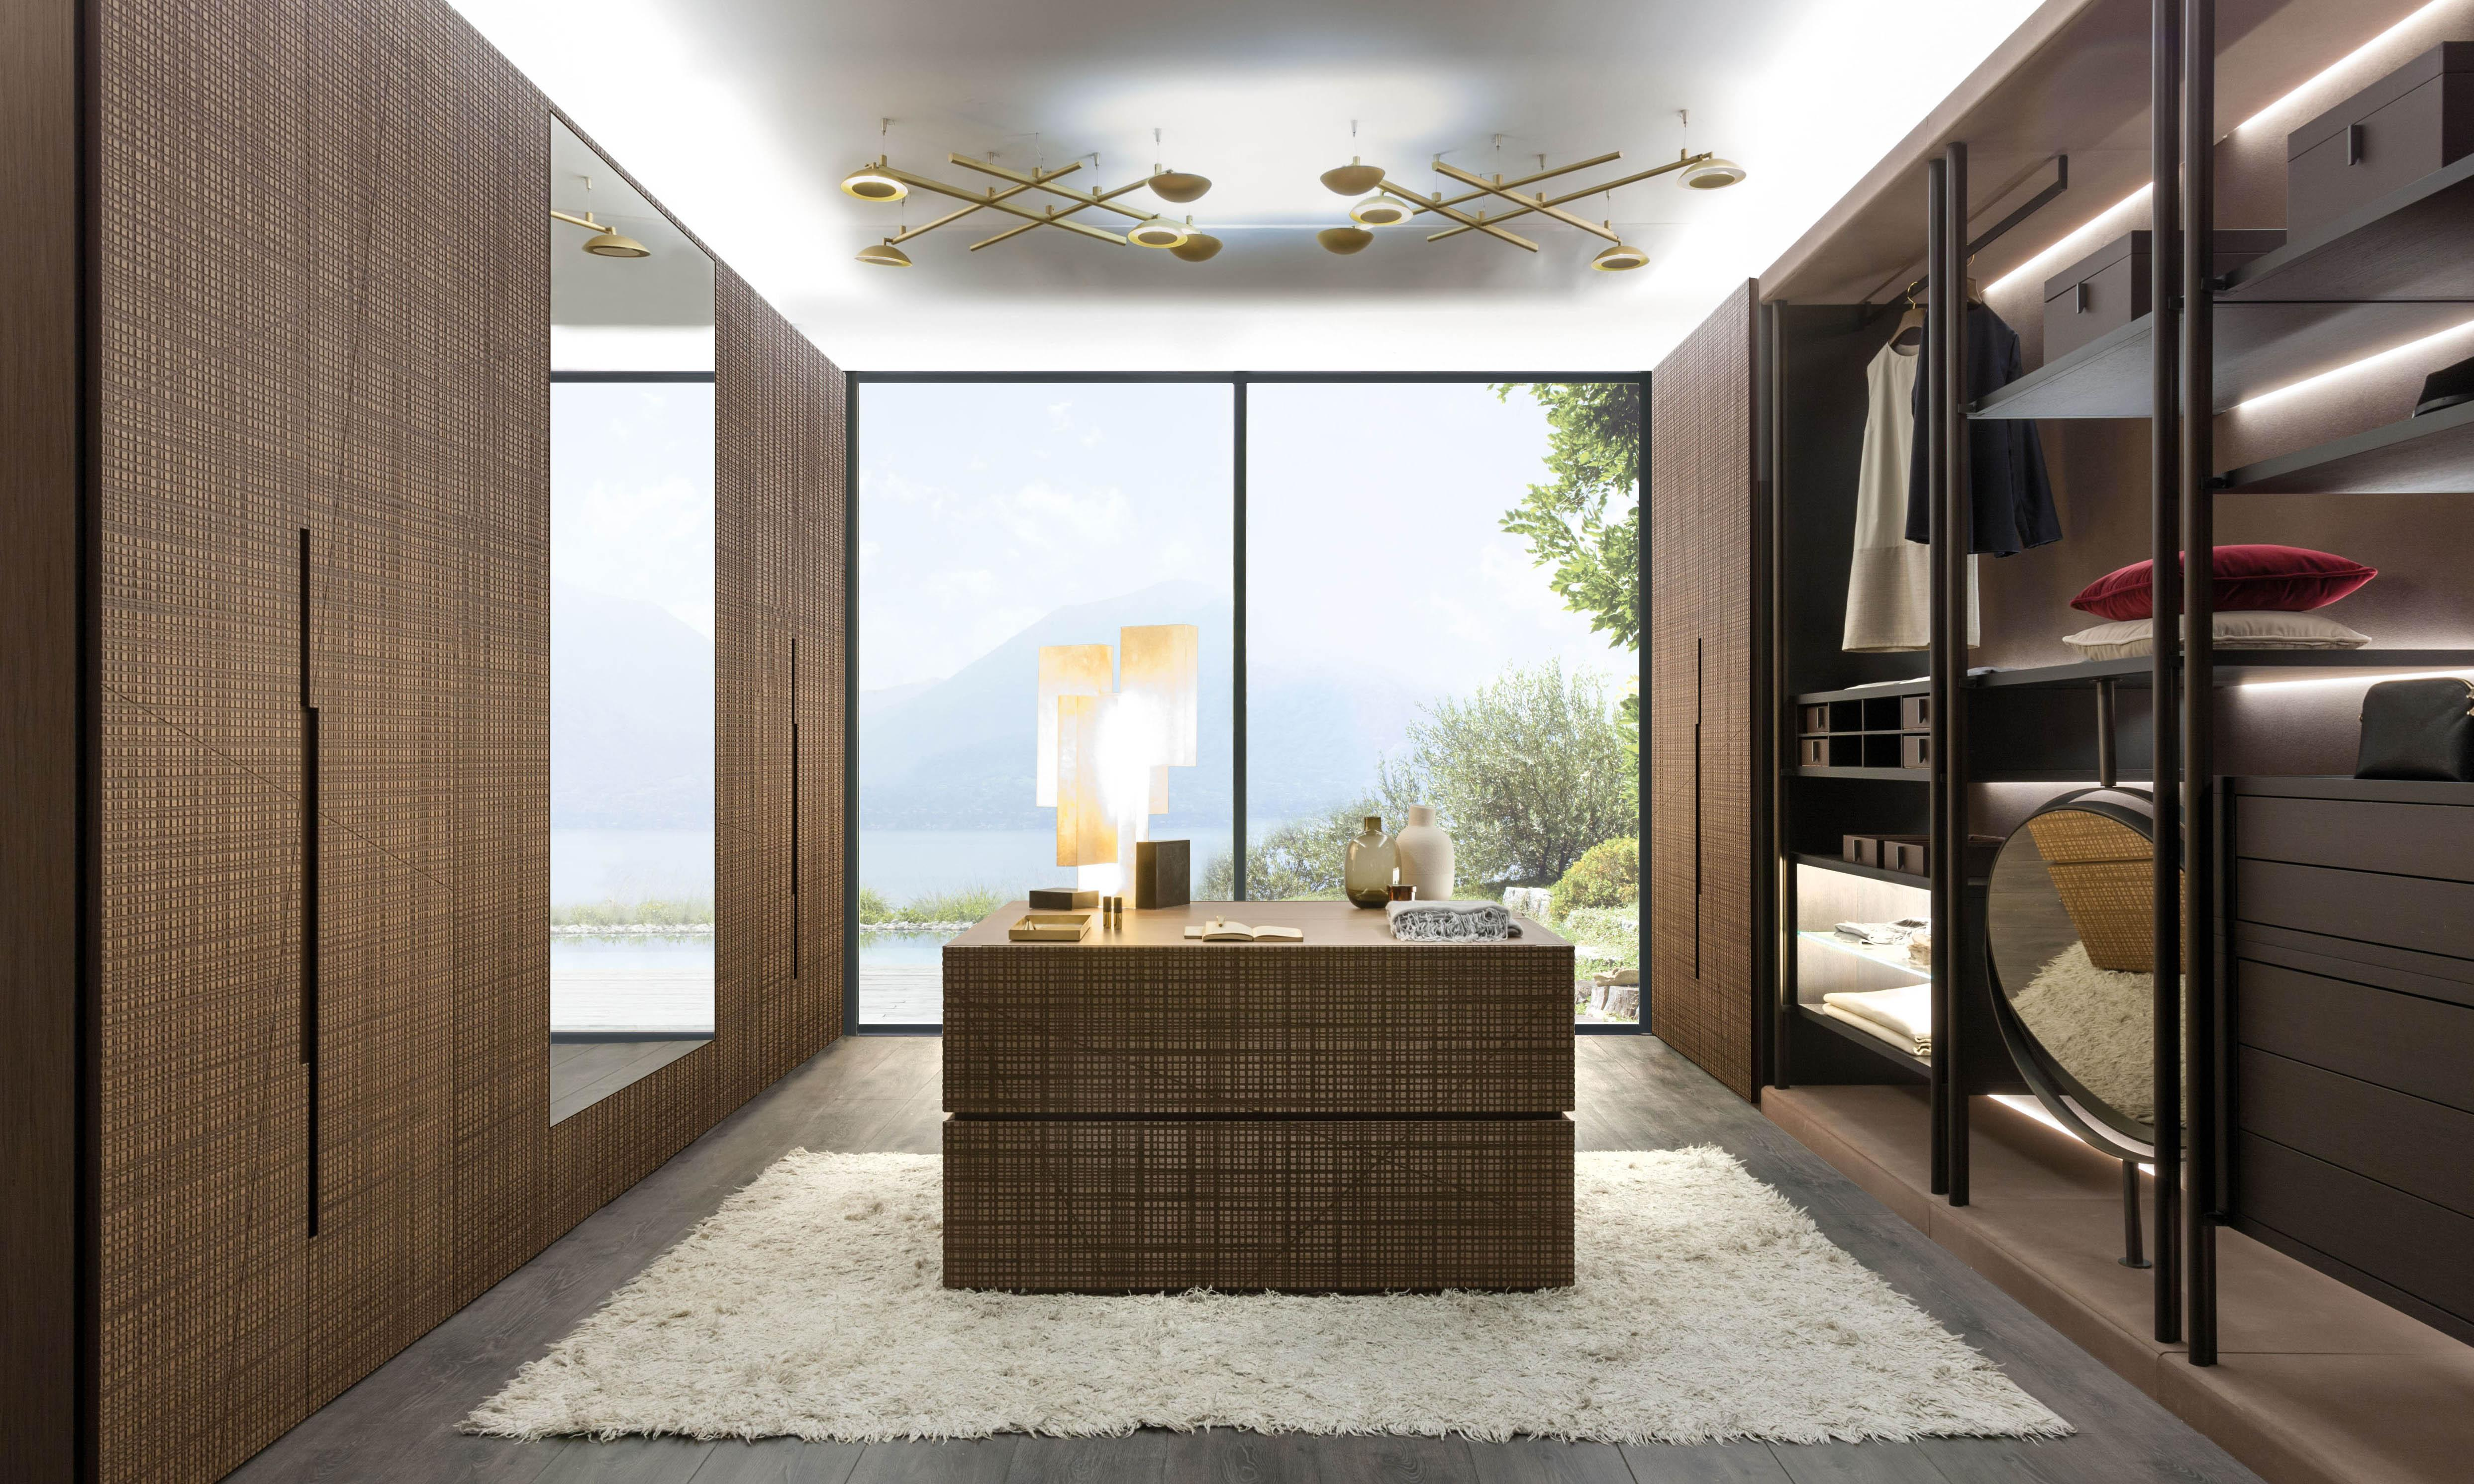 Laurameroni luxury modern integrated wardrobes and walk-in closets for a made to measure bedroom interior design and decor